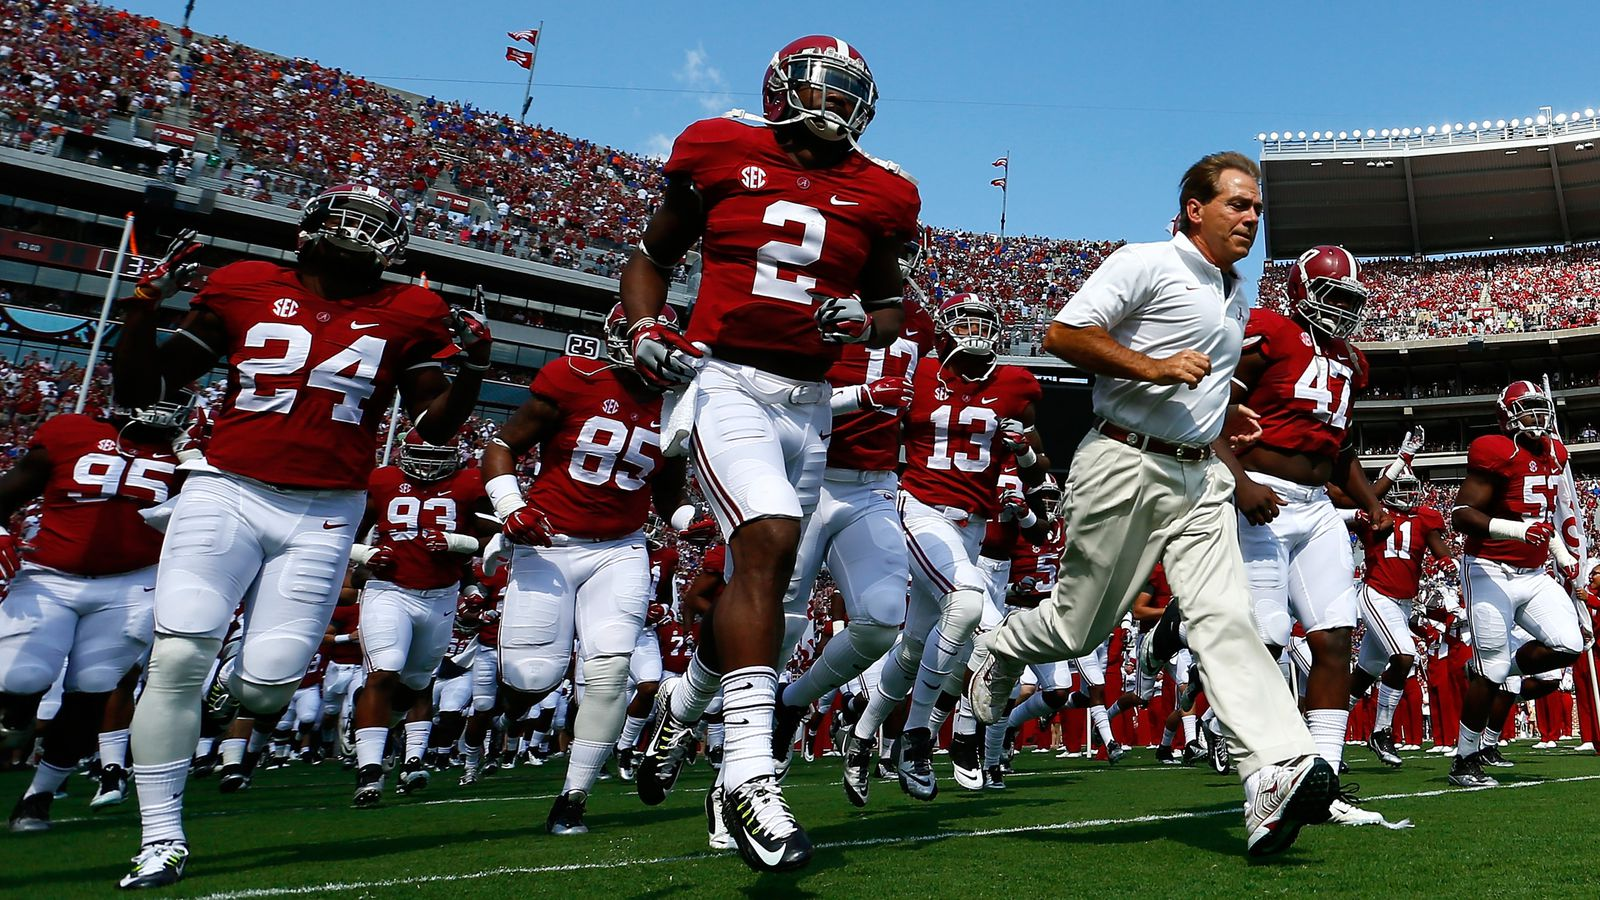 How to watch Alabama vs. Ole Miss: Game guide, TV schedule ...